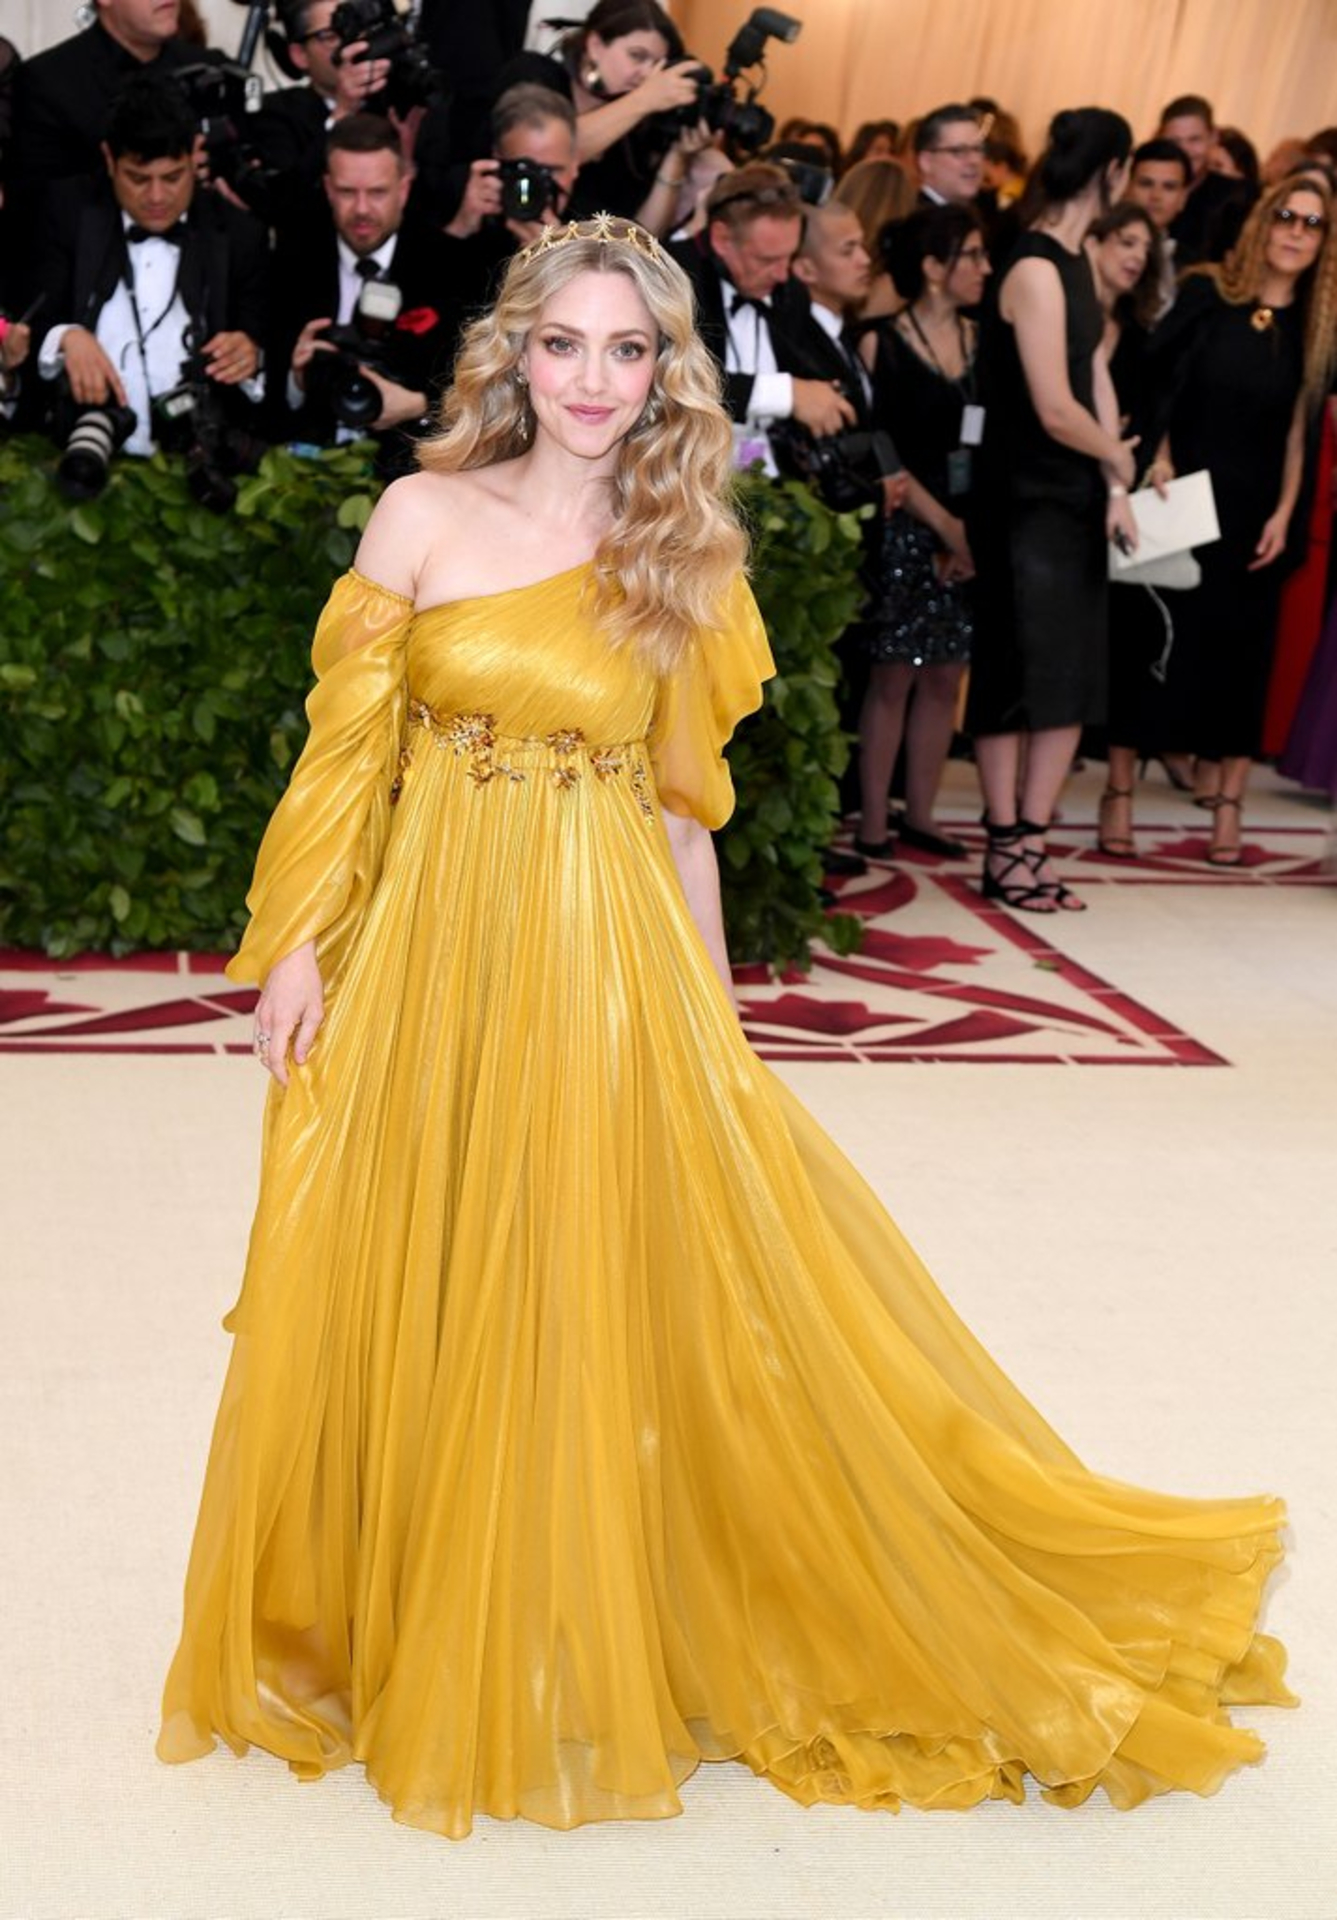 shopaholicpals - Amanda-Seyfried-Met-Gala-Dress-2018